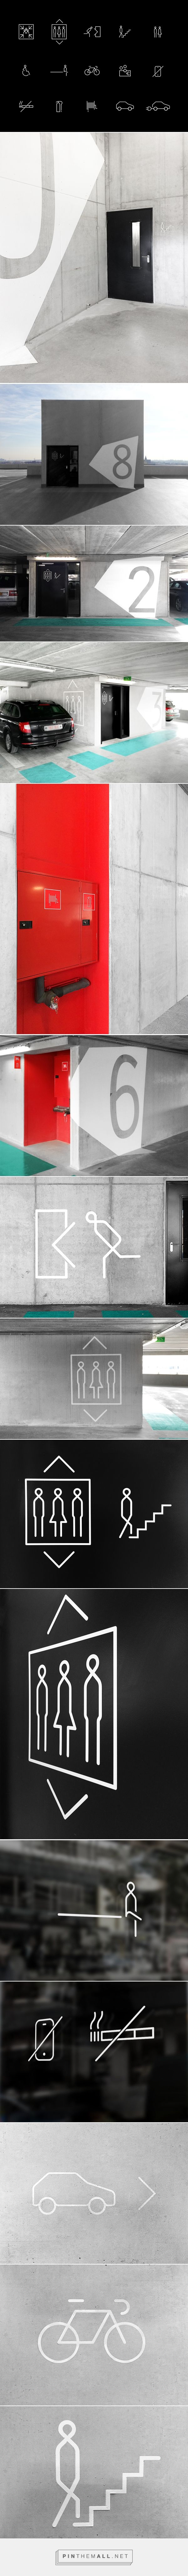 St. Lucas Hospital - signage & way finding on Behance... - a grouped images picture - Pin Them All